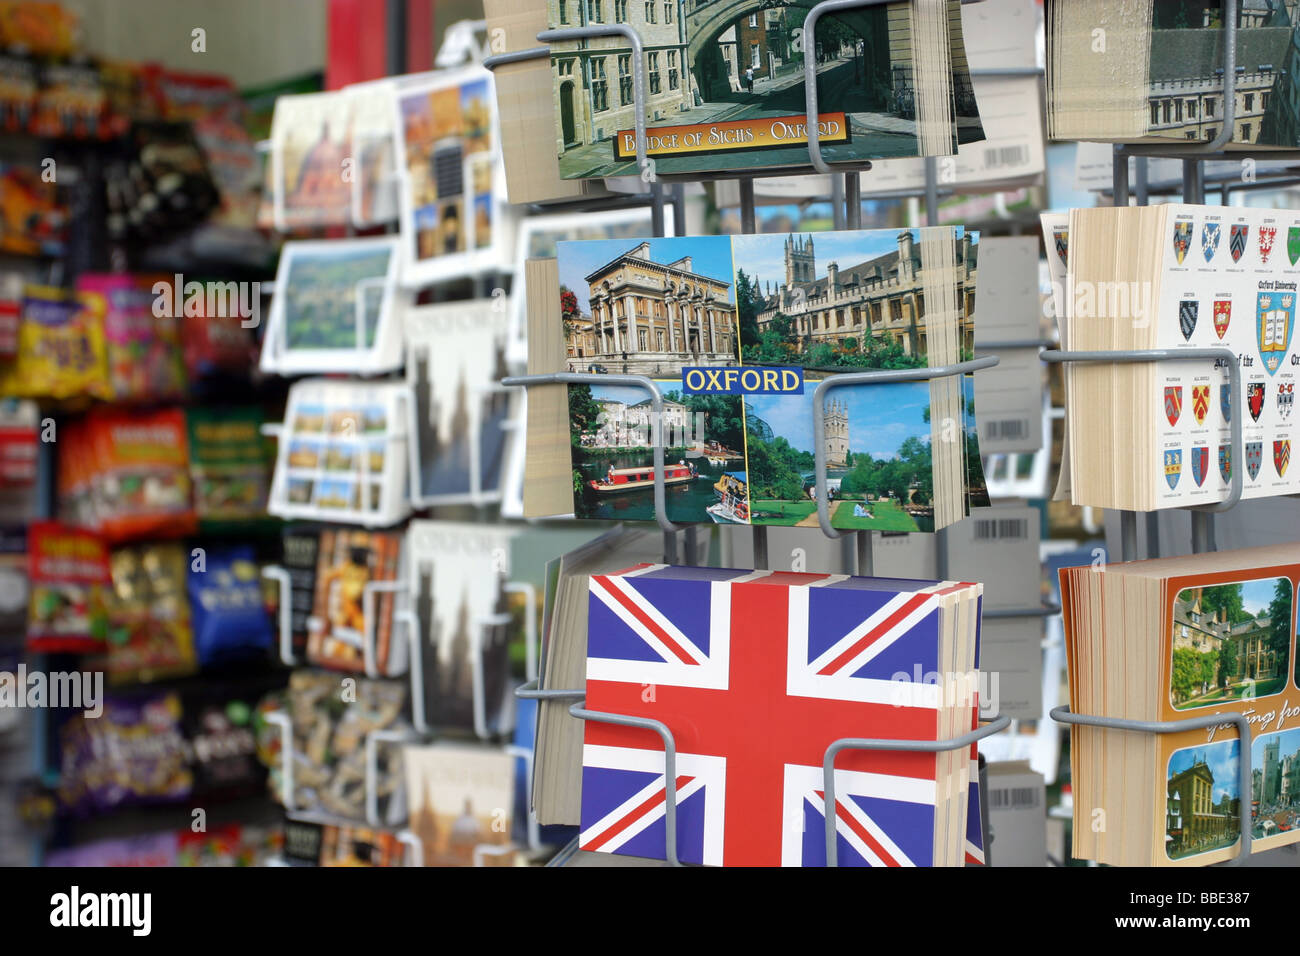 Newsagents selling postcards, Oxford - Stock Image